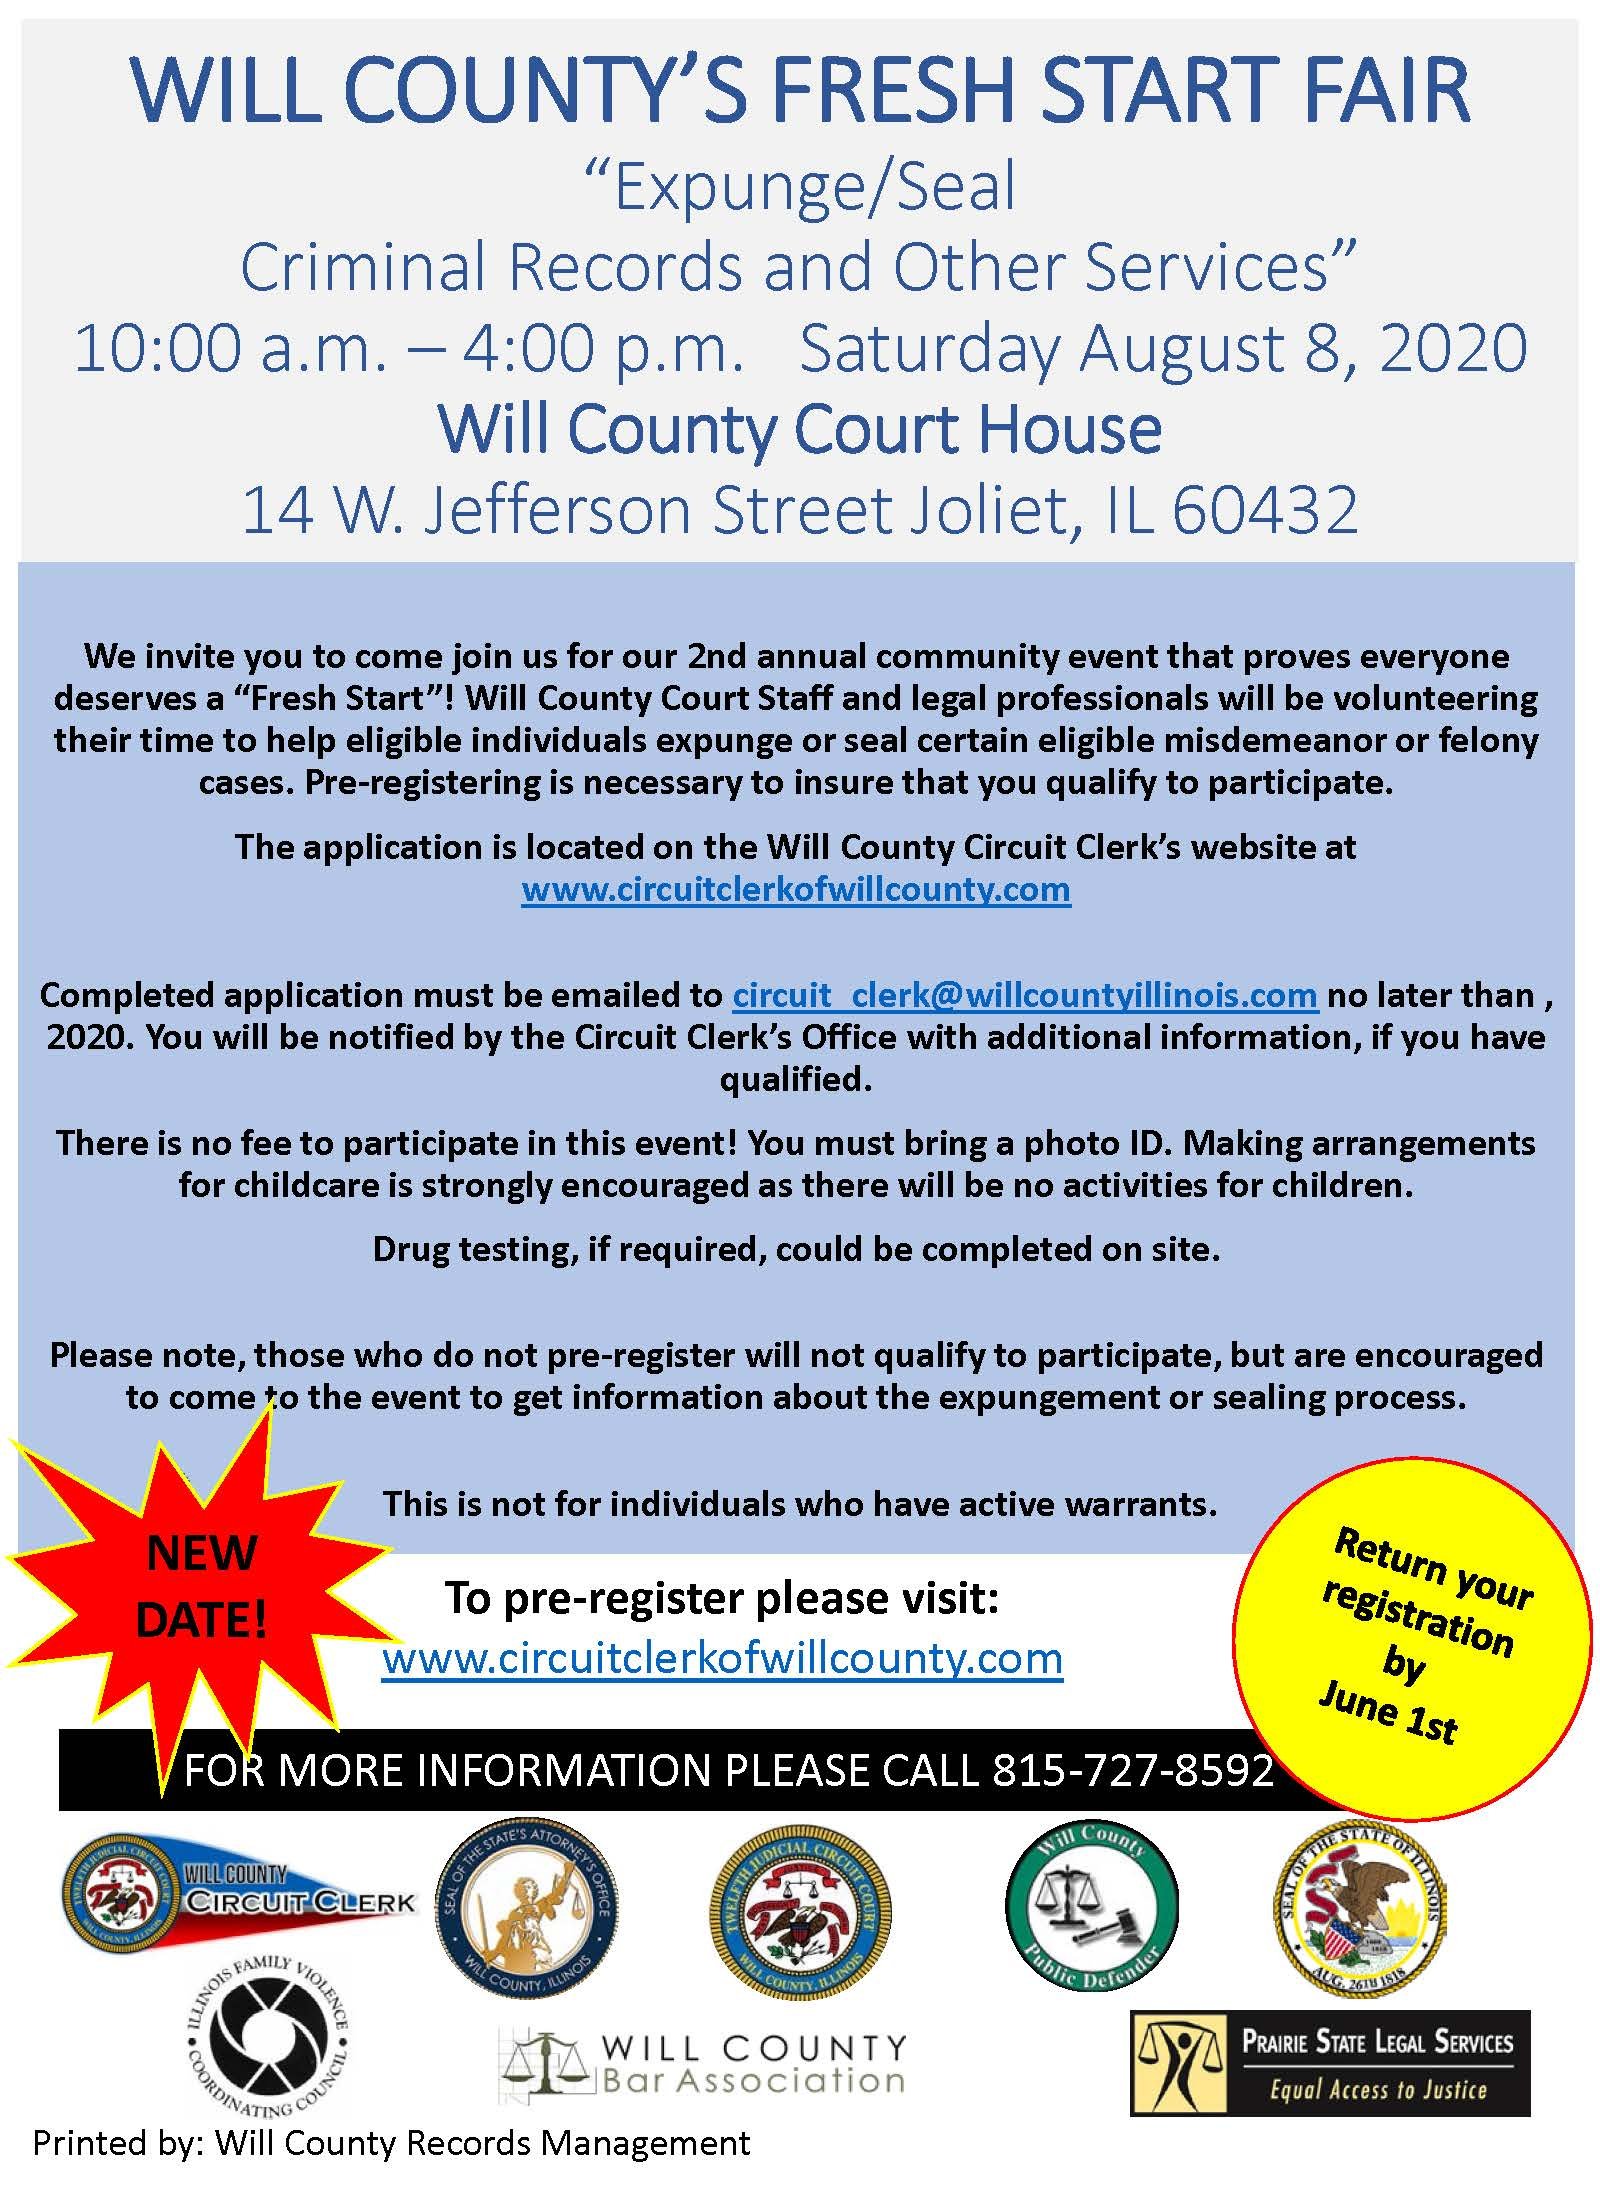 Will County Fresh Start Fair flyer